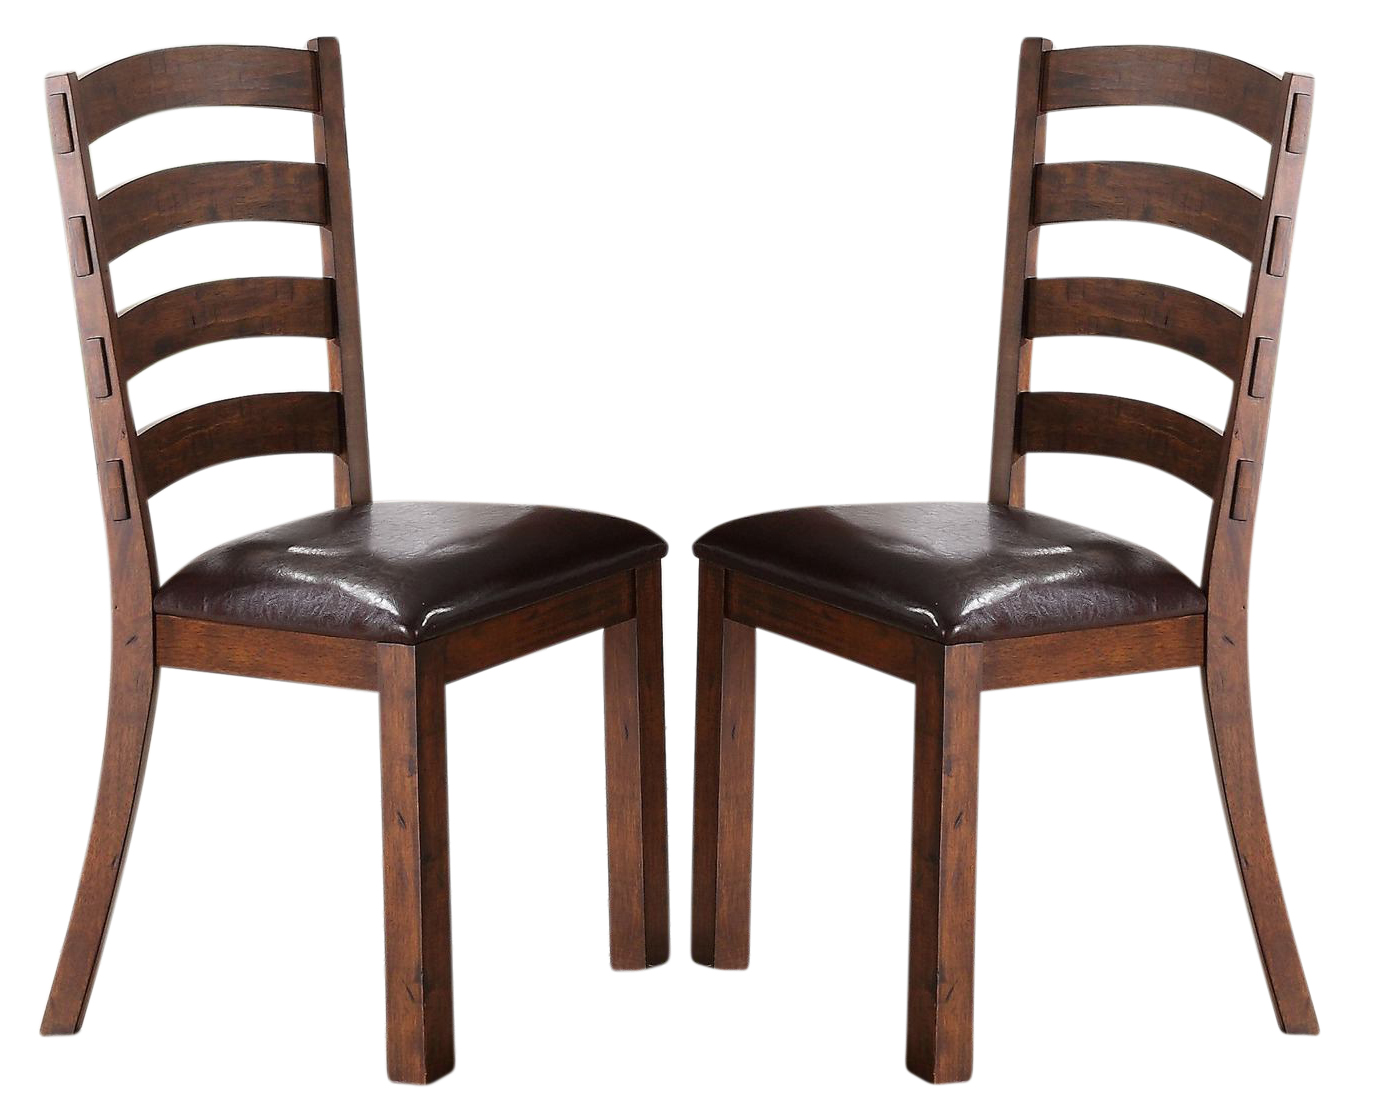 New Classic Furniture Lanesboro Dining Chair Set Of 2 In